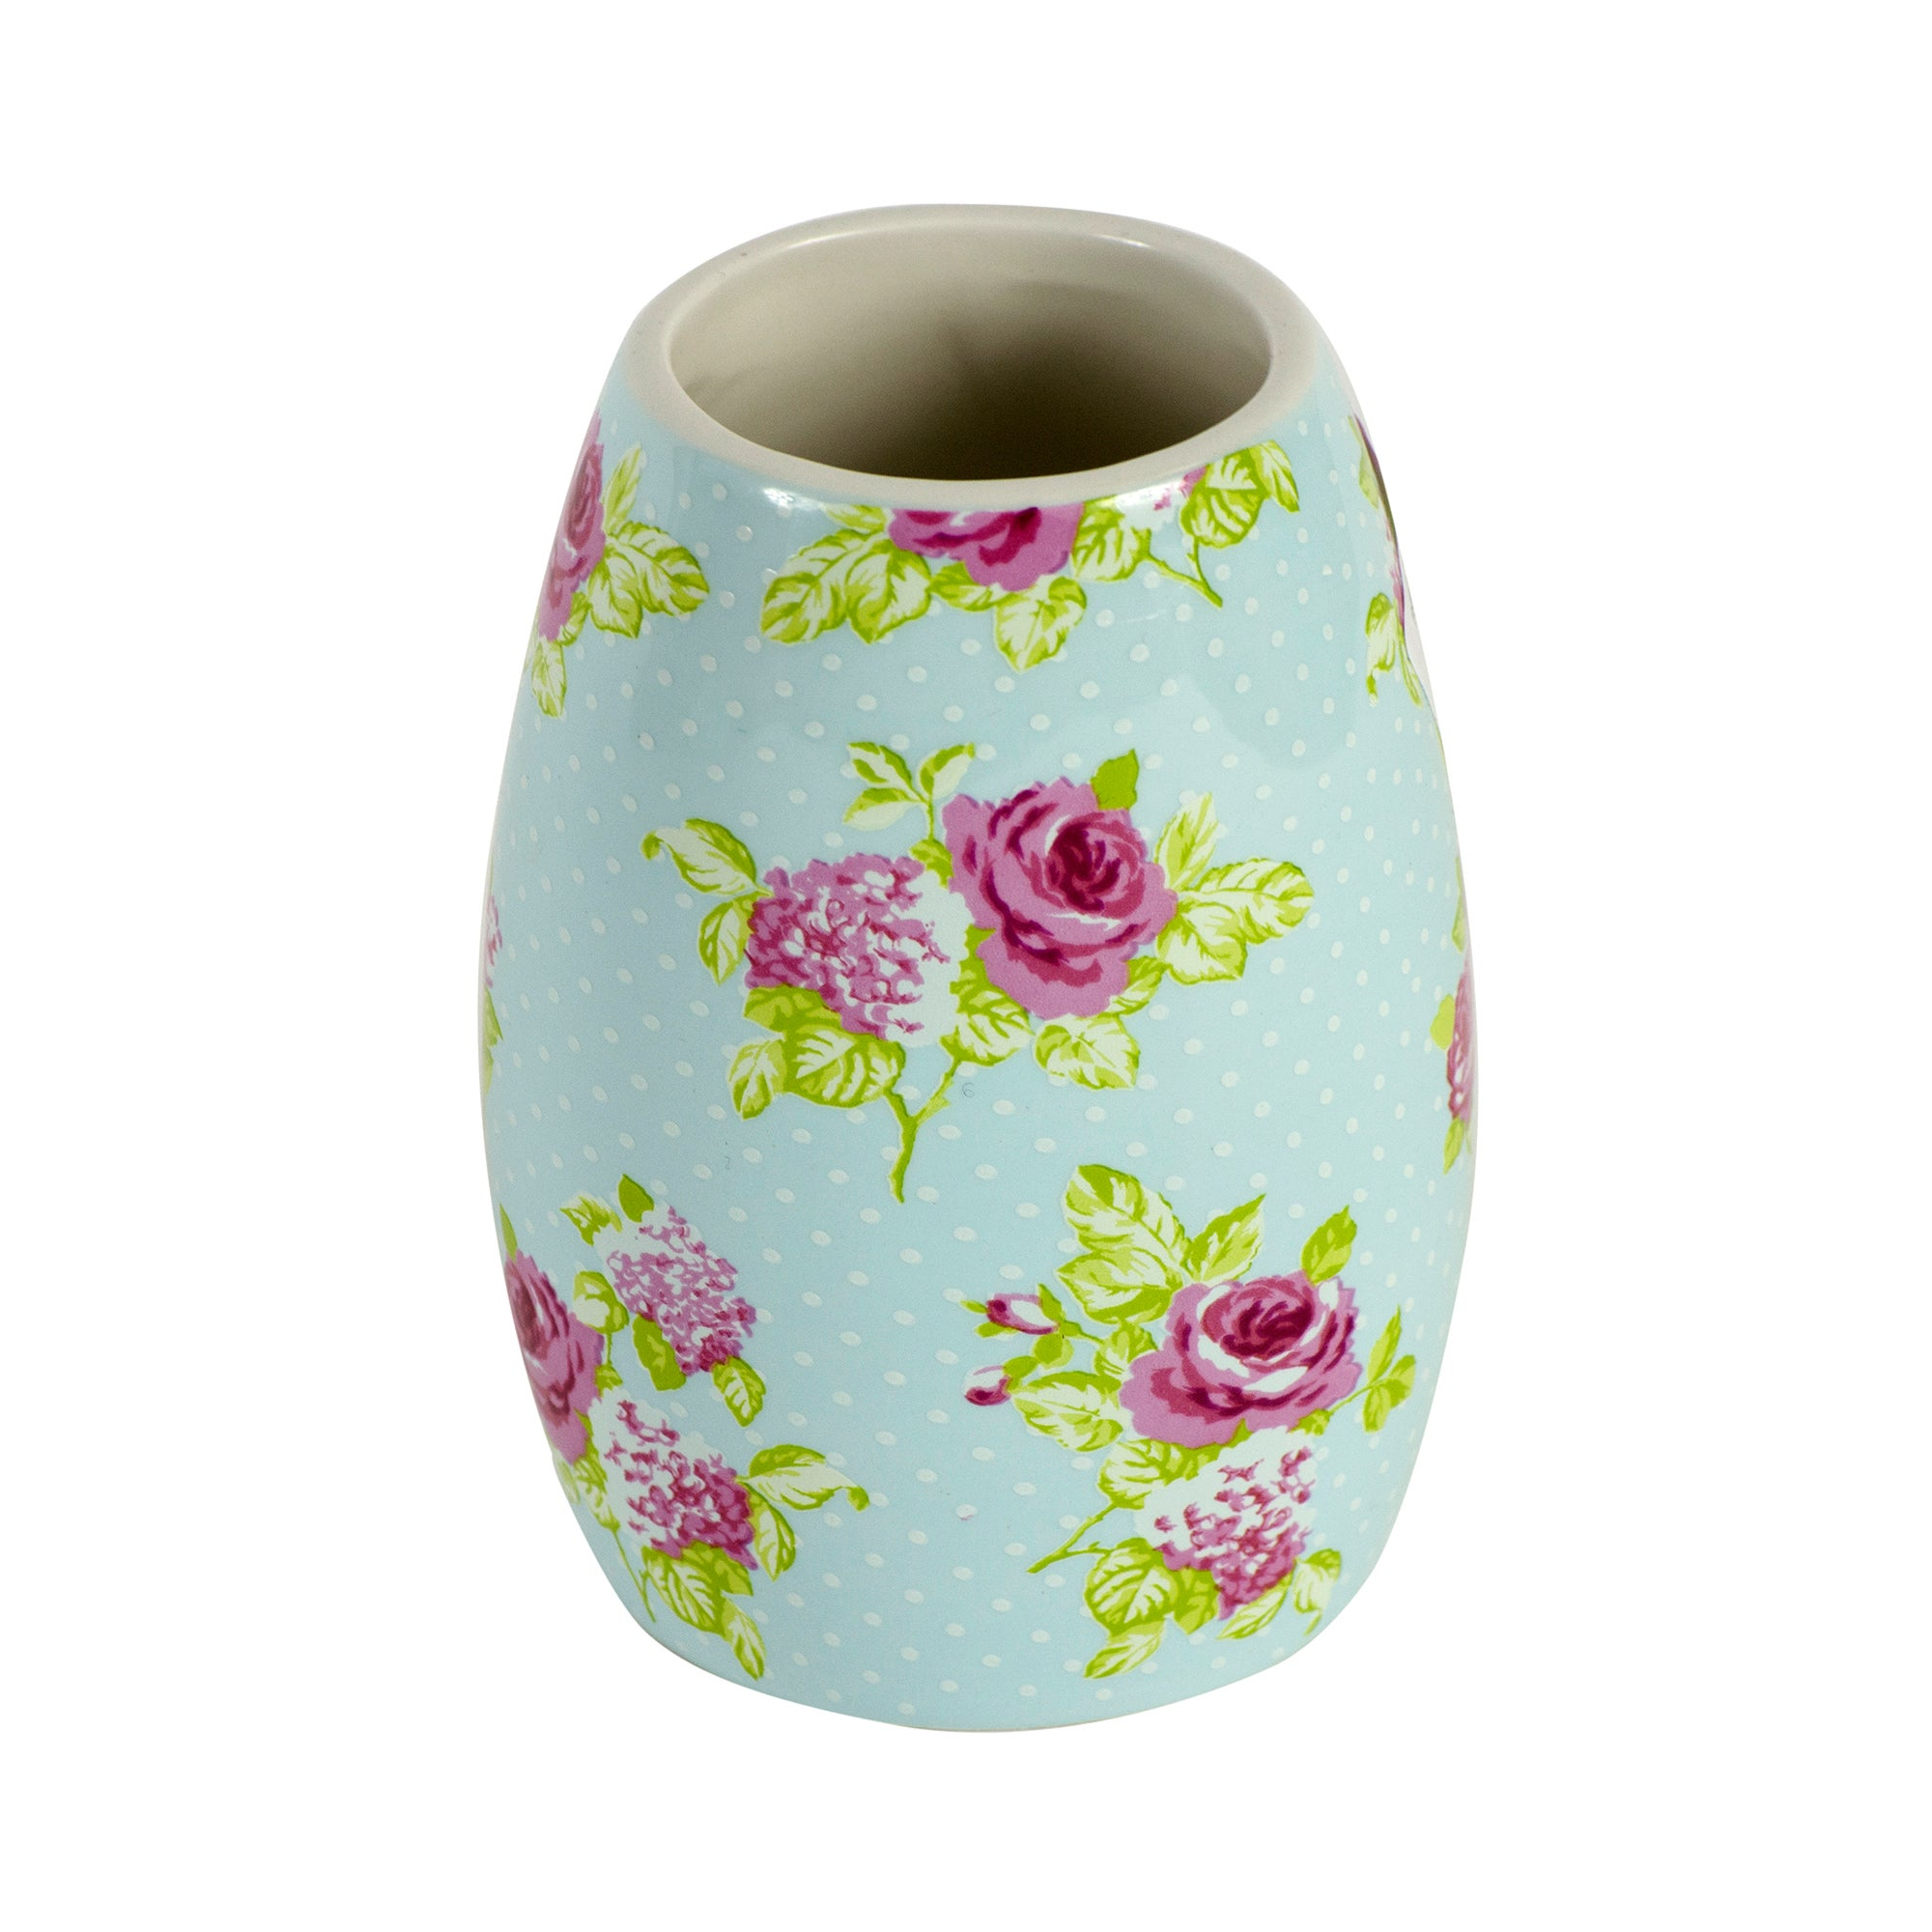 Rose and Ellis Claredon Collection Tumbler